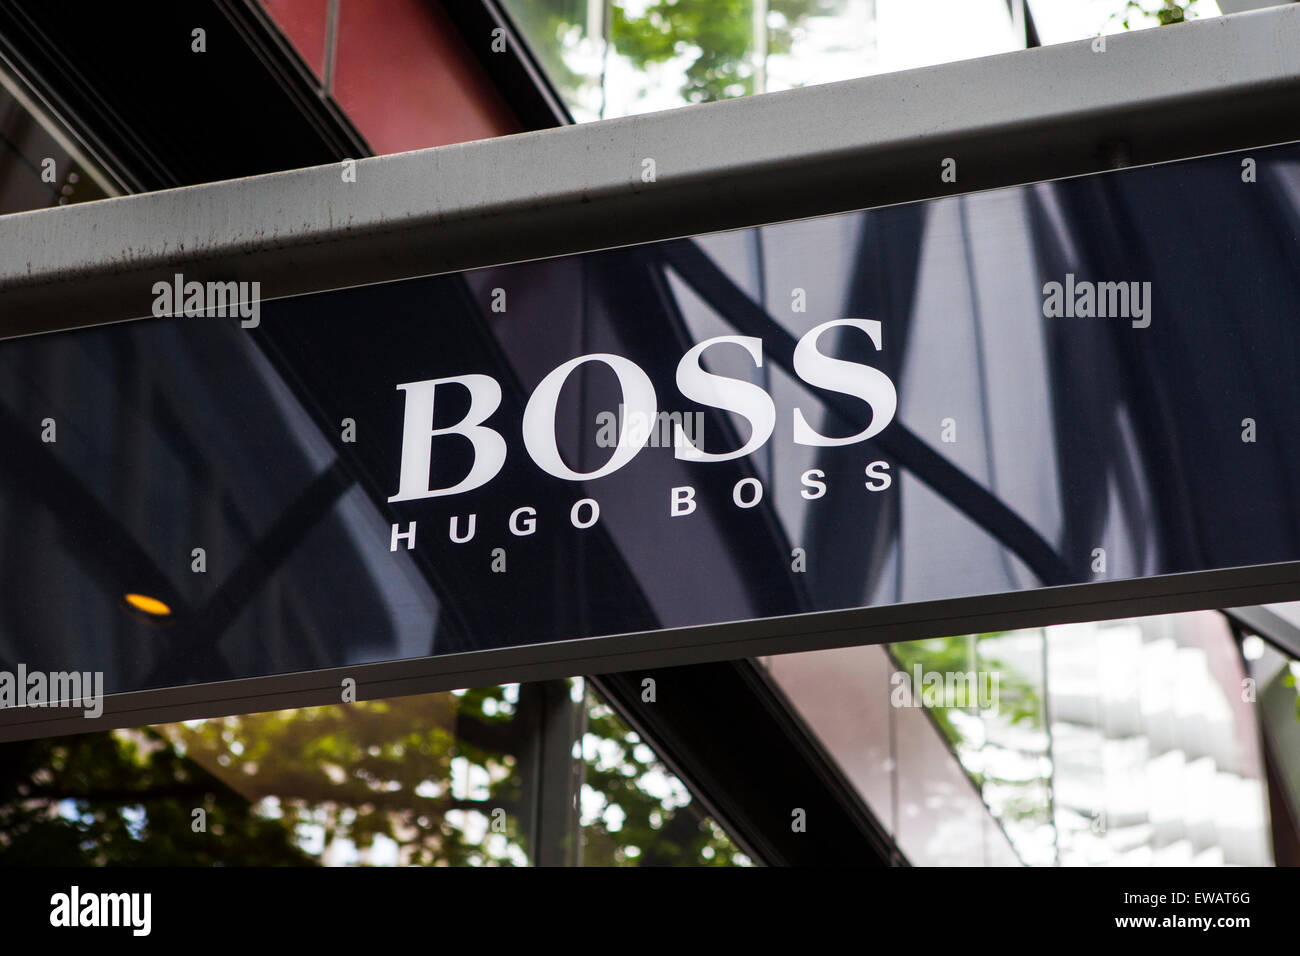 LONDON, UK - JUNE 10TH 2015: A sign on the shopfront of a Hugo Boss retail outlet in central London, on 10th June - Stock Image